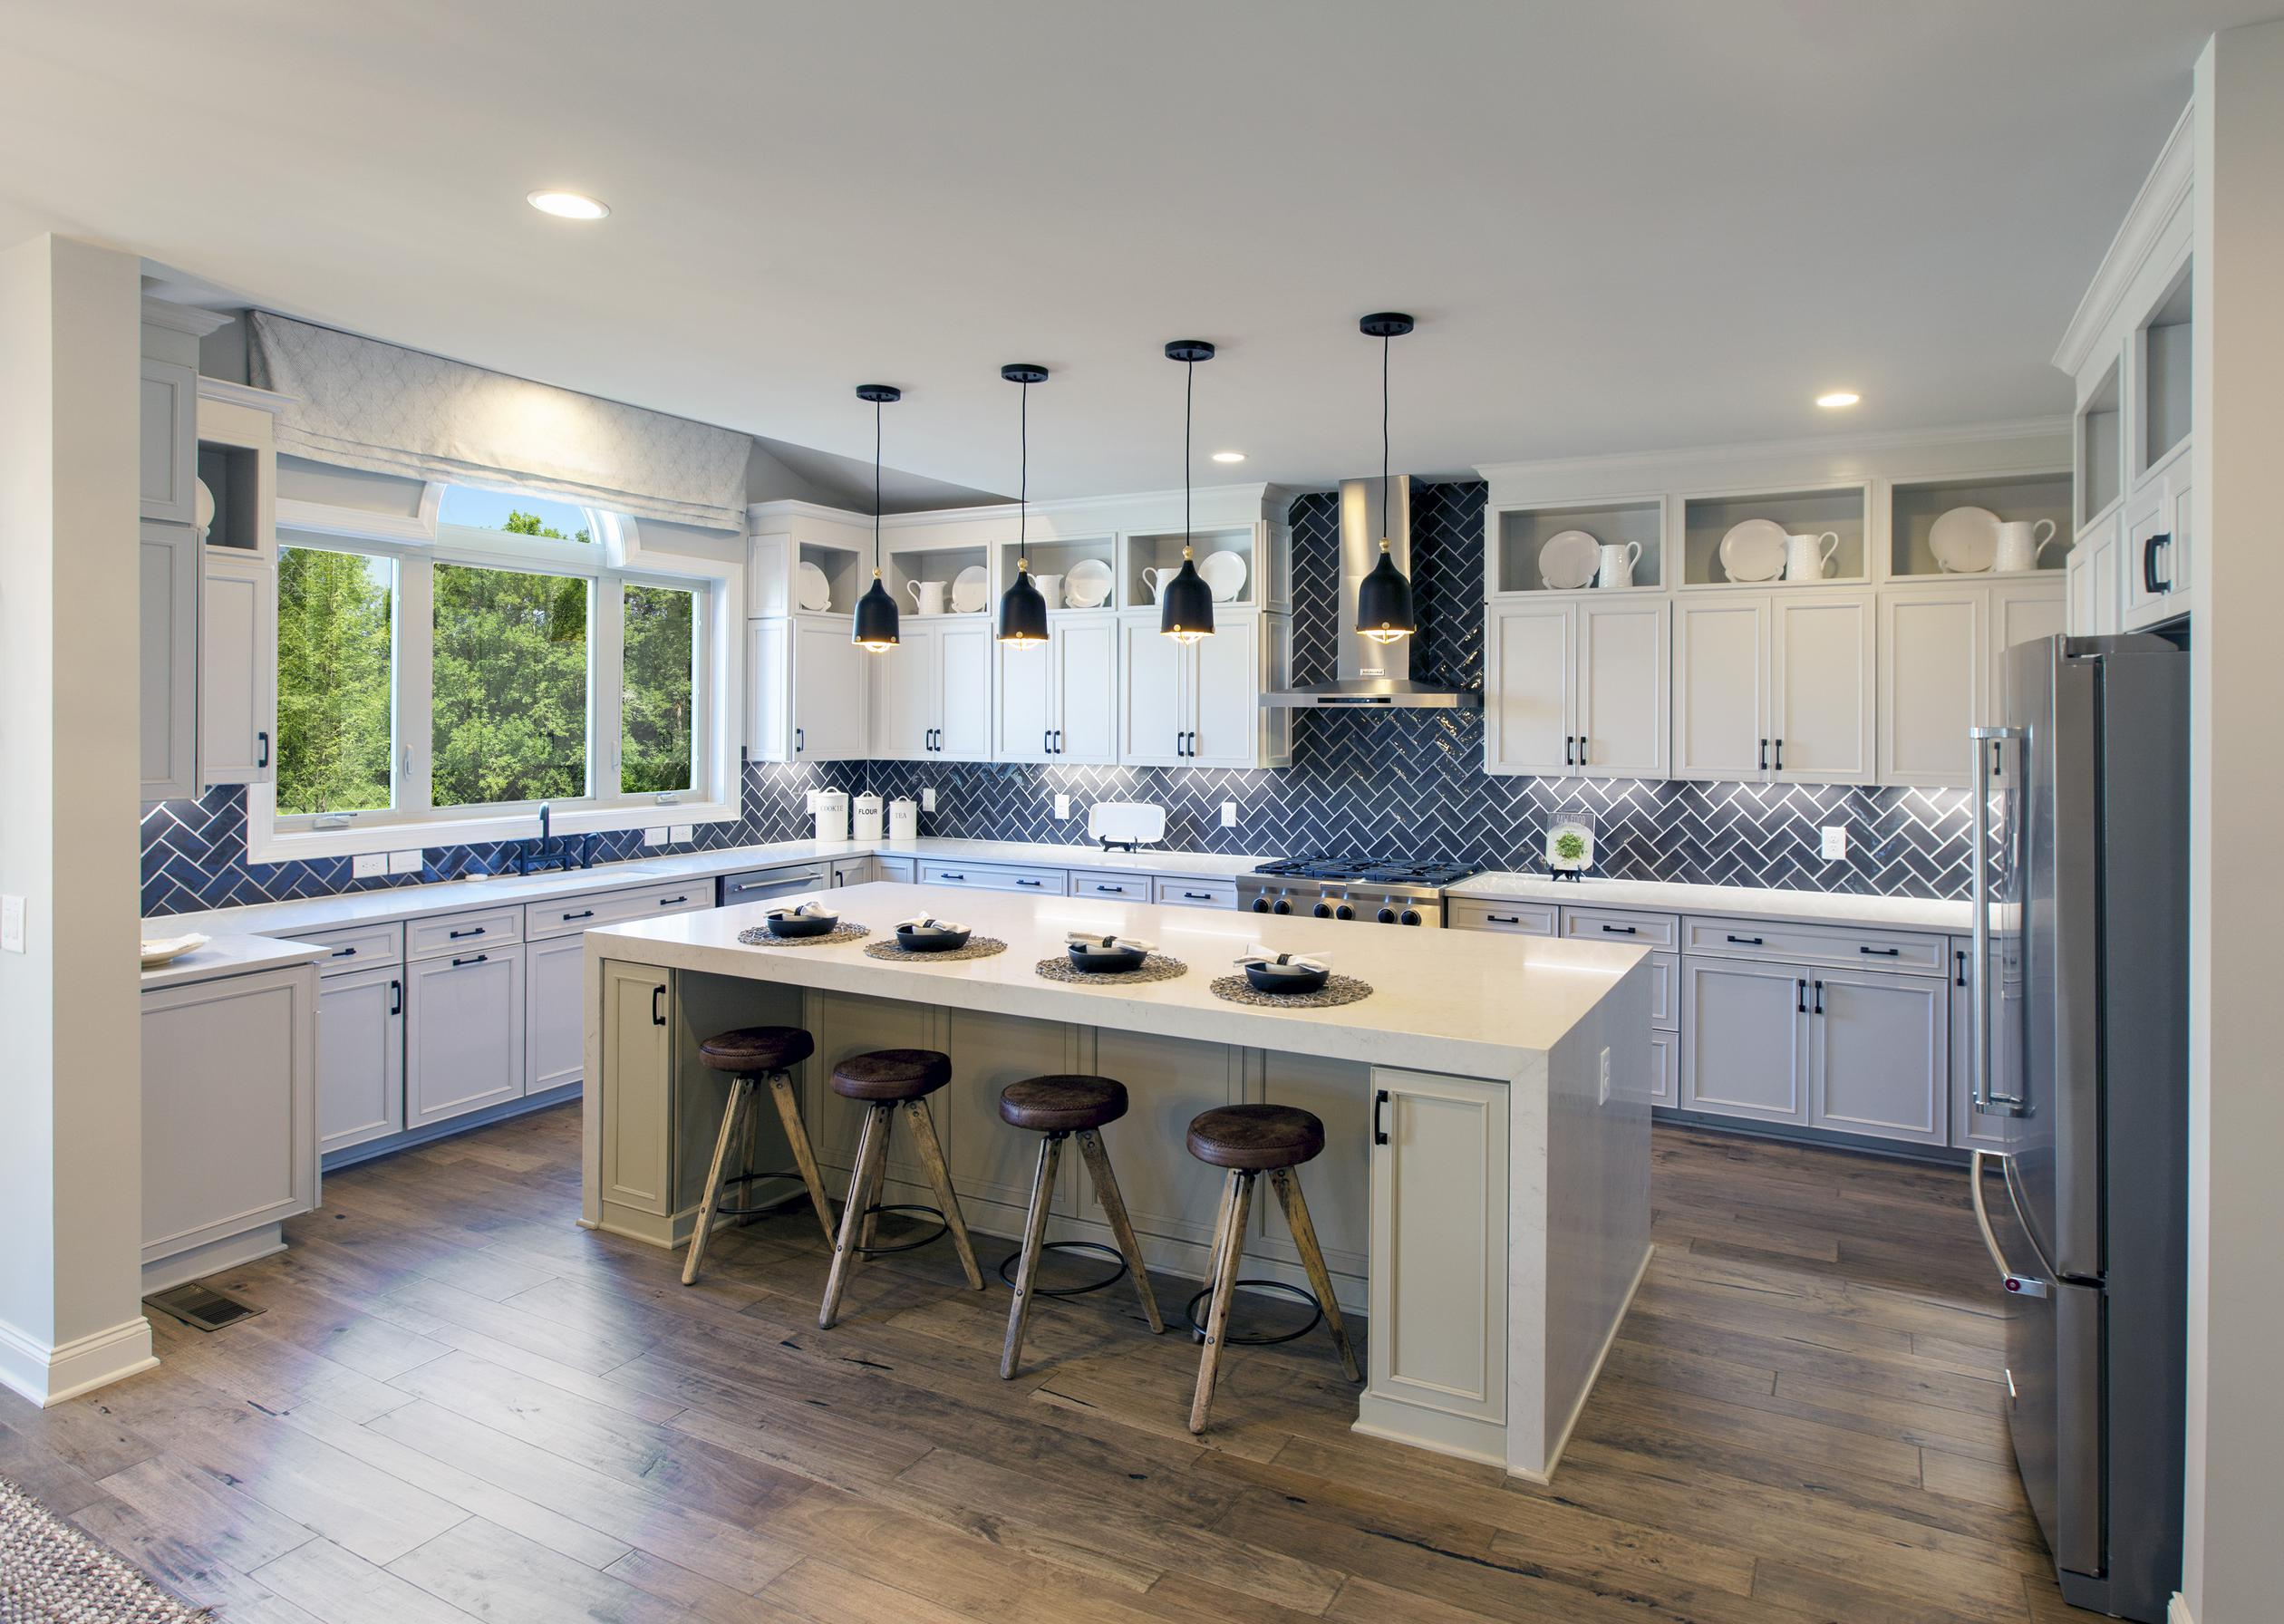 25 Luxury Kitchen Ideas For Your Dream Home Build Beautiful,Color Combination For Black Shirt